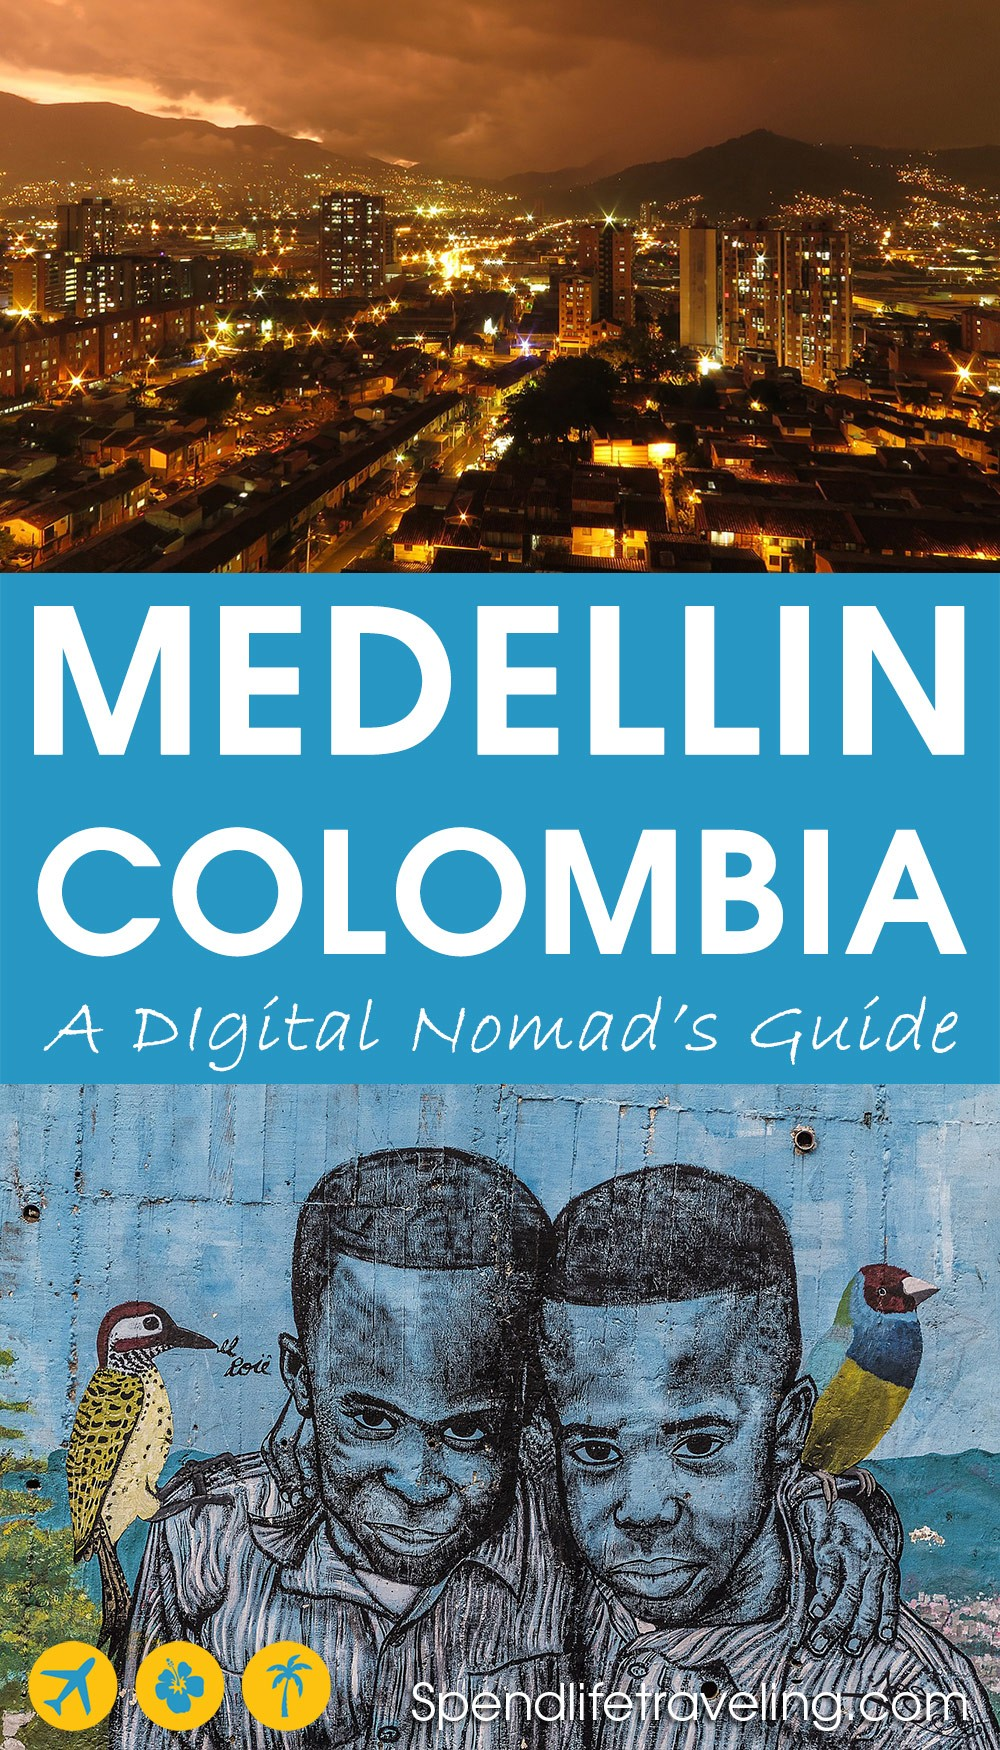 A digital nomad's guide to Medellin, Colombia. Are you thinking about spendling some time in Medellin to work remotely? Check out this practical guide with tips about where to stay, where to work from, what to do and more!